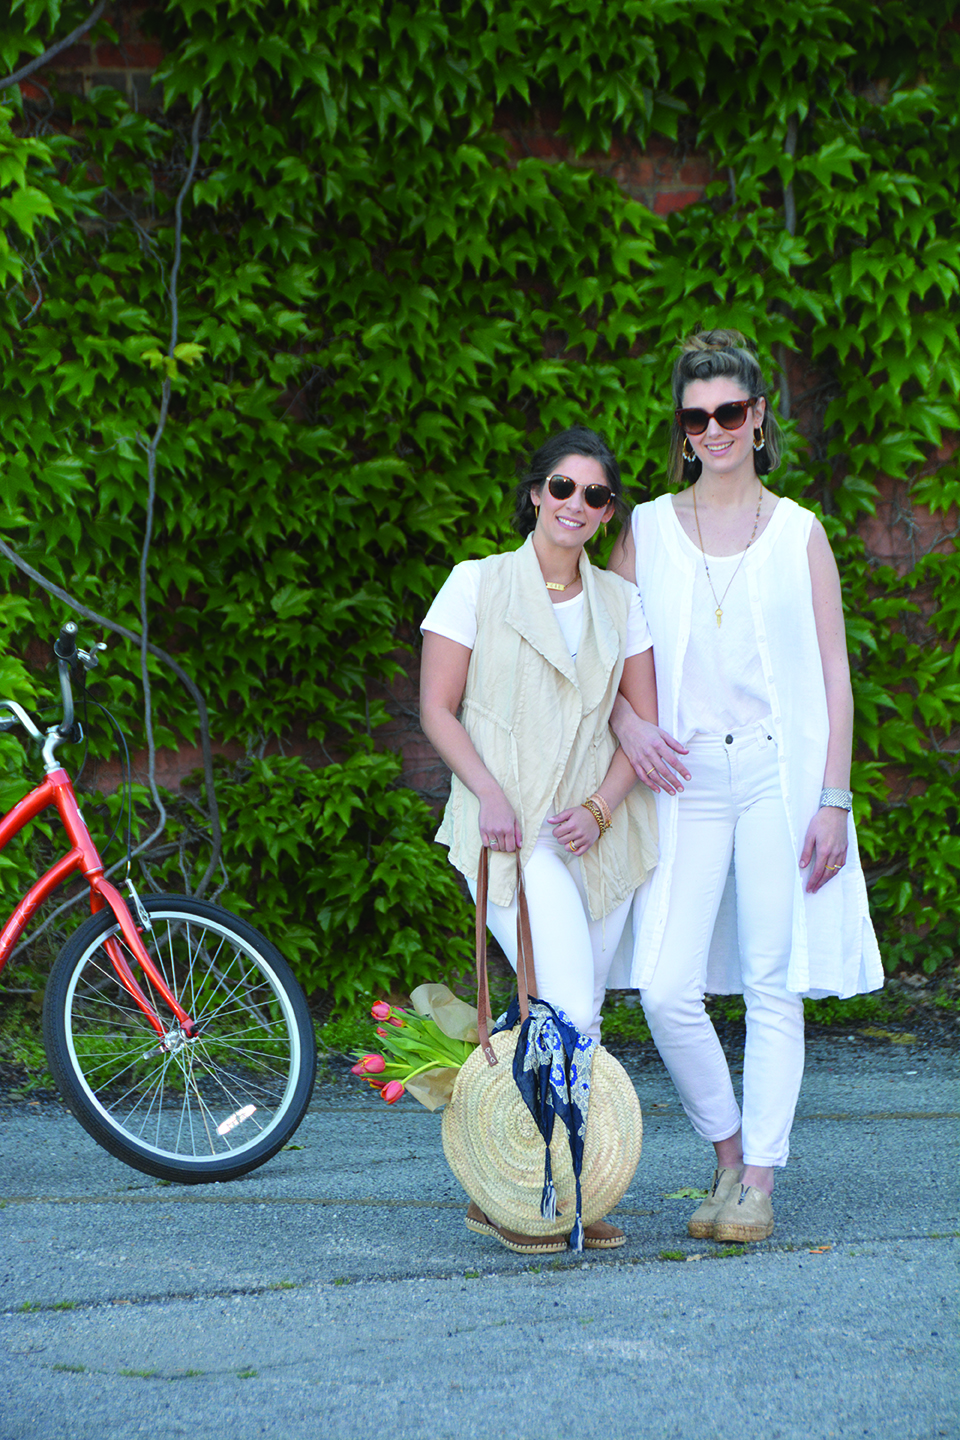 Bike rides and farmer's market trips with friends.    MODEL ON LEFT :  Linen Vest in Stone $78 (also available in Java) ,  Swallow & Stars T-Shirt $29 , Espadrille in Taupe $78 (in showroom only),  ID Necklace $98 ,  Gold Dagger Earring $69 ,  Lucy Wrapping Leather and Chain Bracelet in Natural and Gold $149 ,  Braided Leather Bracelet $59 , Wilson Bracelet $79, Straw Tote with Leather Handle $98 (in showroom only),  Johnny Was Silk Scarf in Blue $89    MODEL ON RIGHT :  Linen Duster $96 ,  White Linen Tank $54 ,  Mia Necklace with Moonstone with Amy Pendant $189 ,  Kimberly Hoop Earring with Moonstone $98 , Matte Gold Espadrille $140 (in store only)